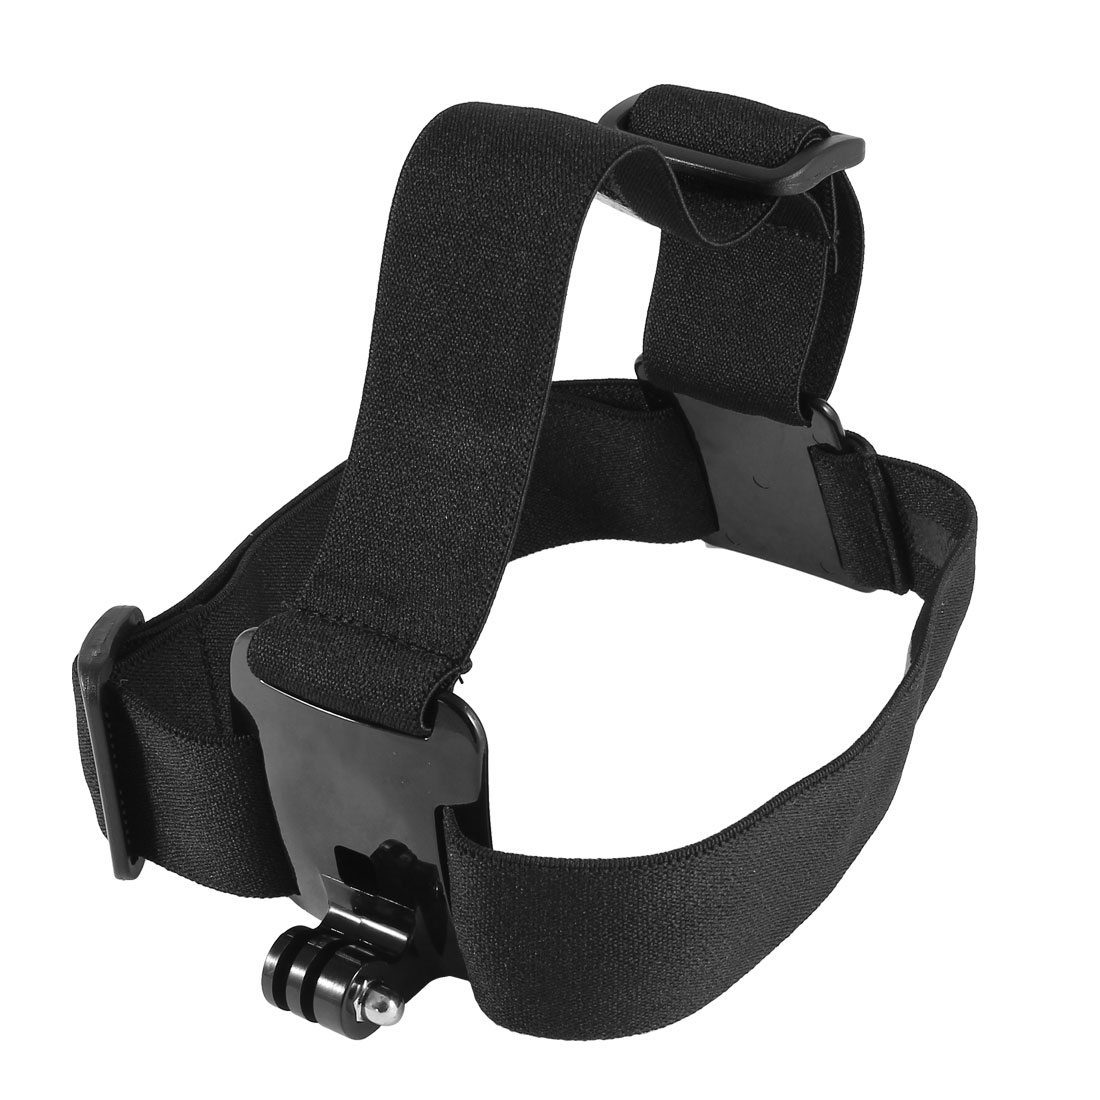 Elastic Adjustable Head Strap Mount for GoPro HERO HERO2 HERO3